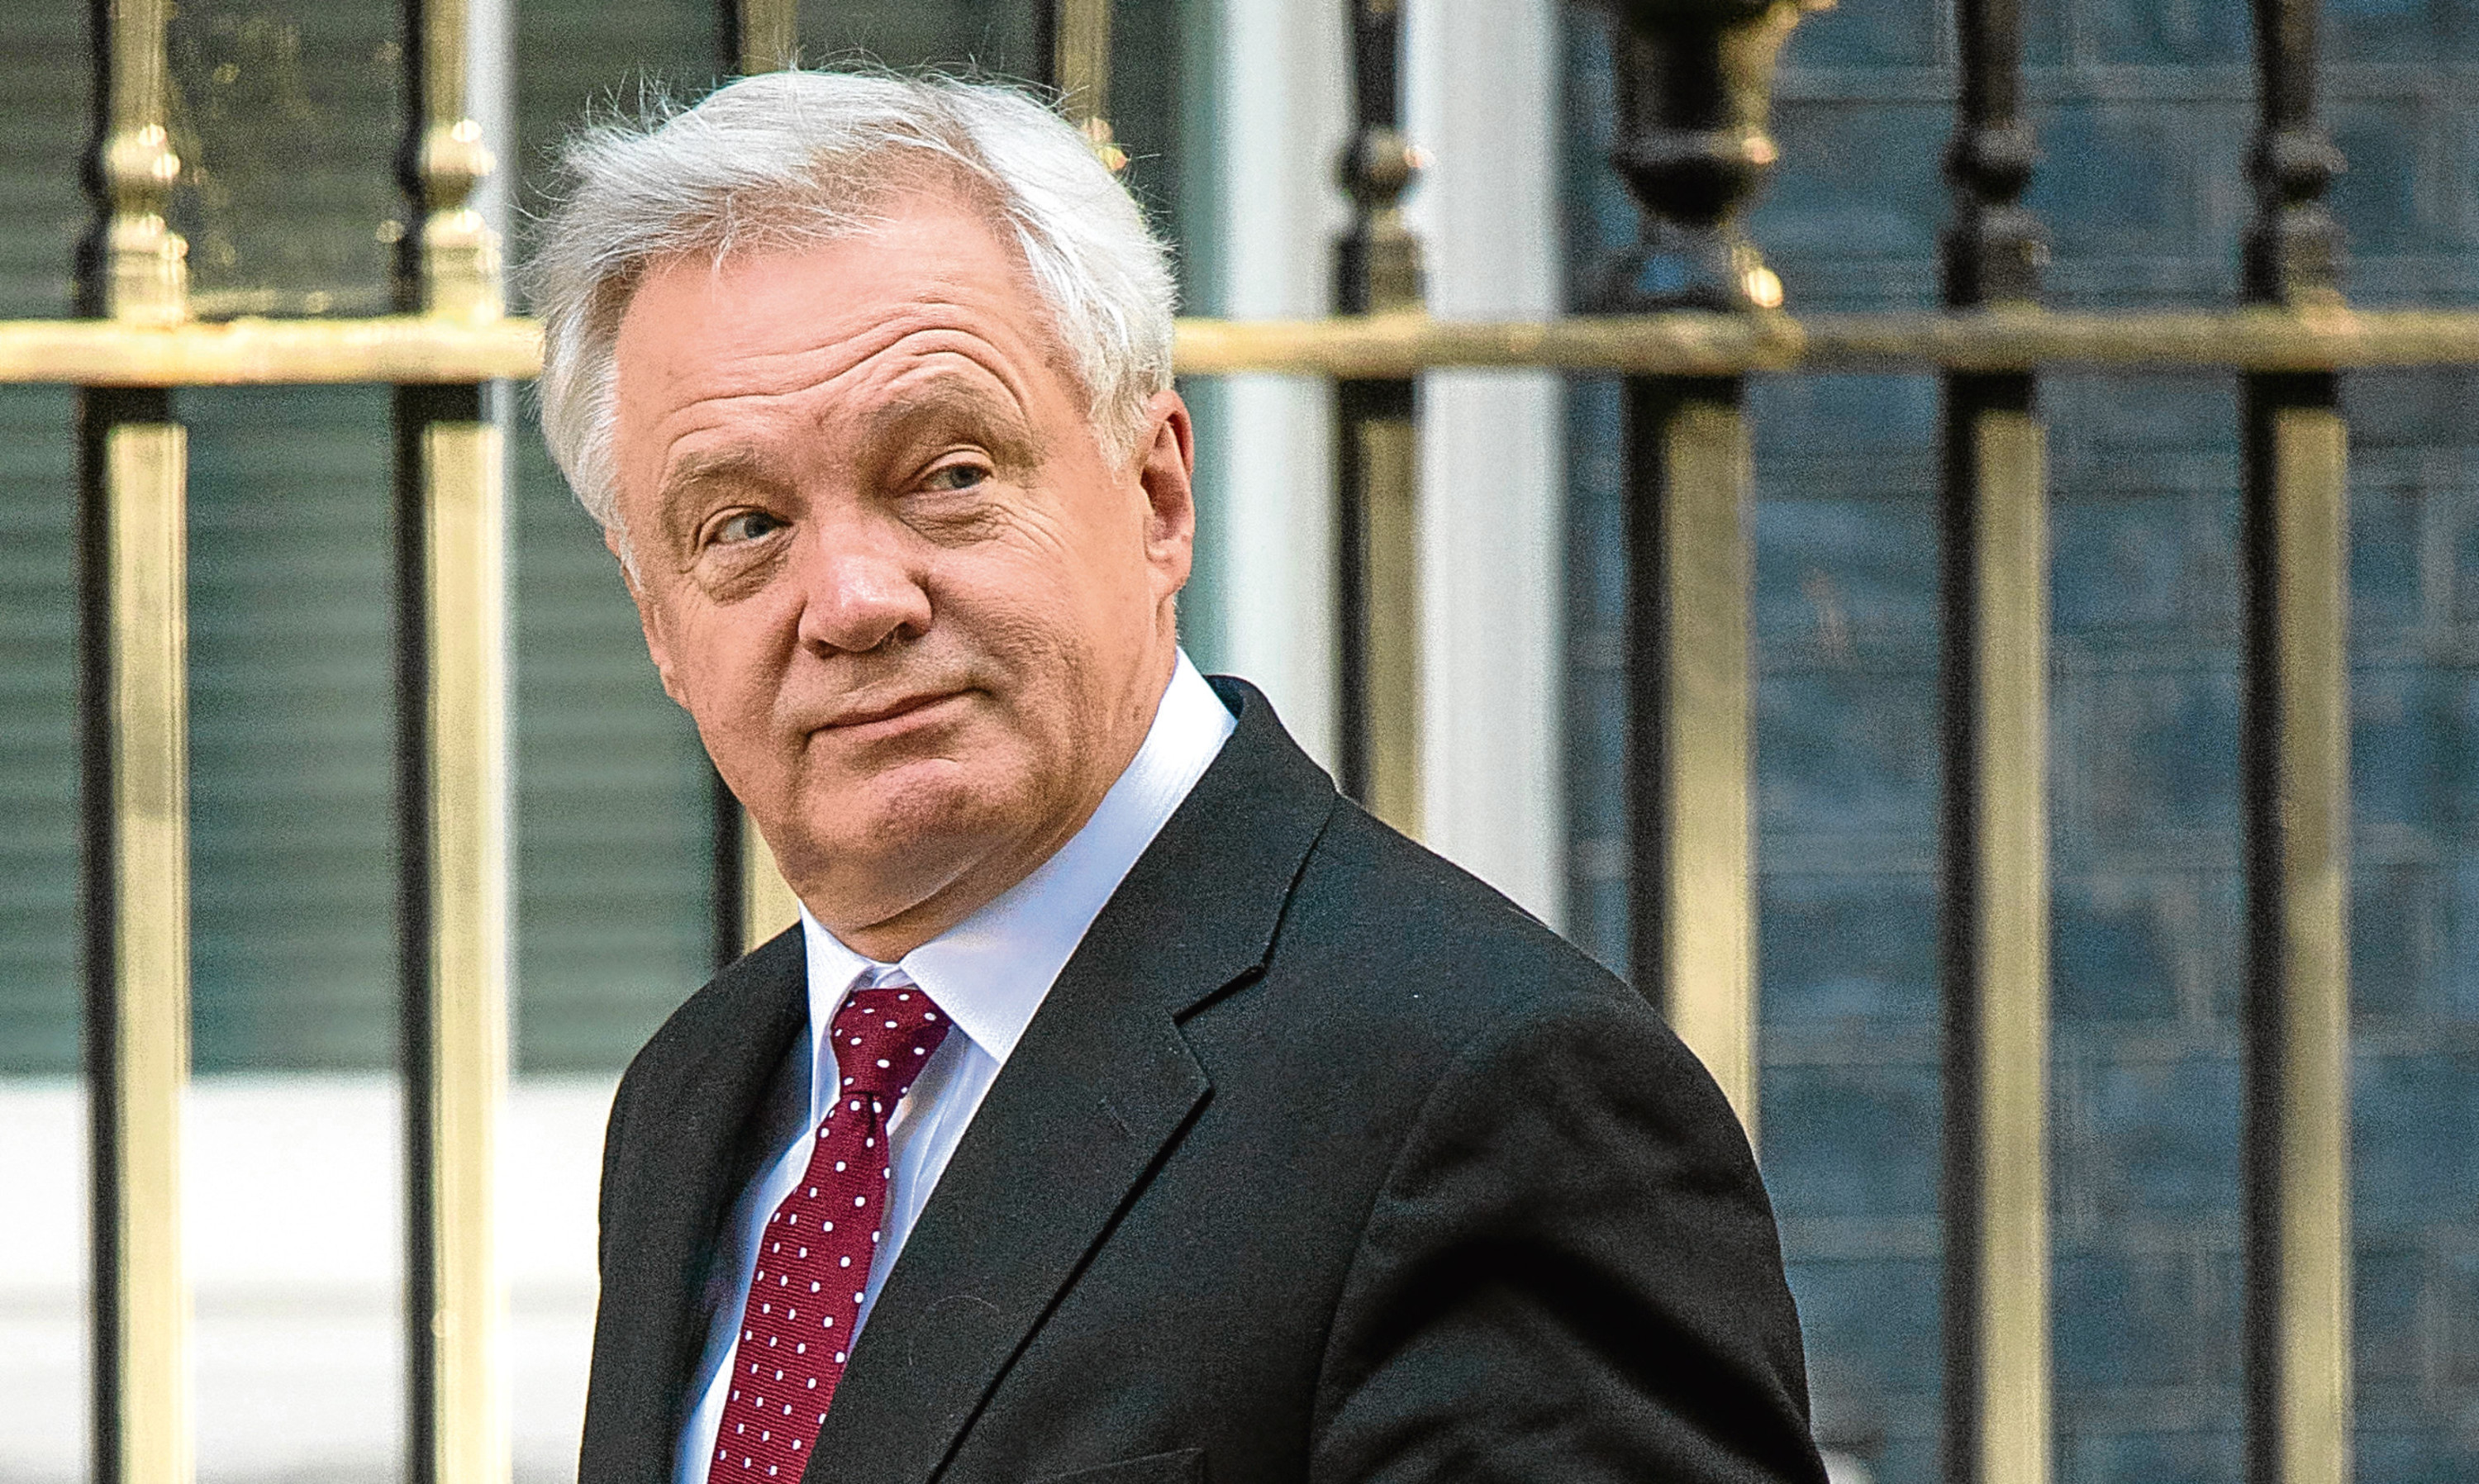 David Davis quit as Brexit Secretary on Sunday night.